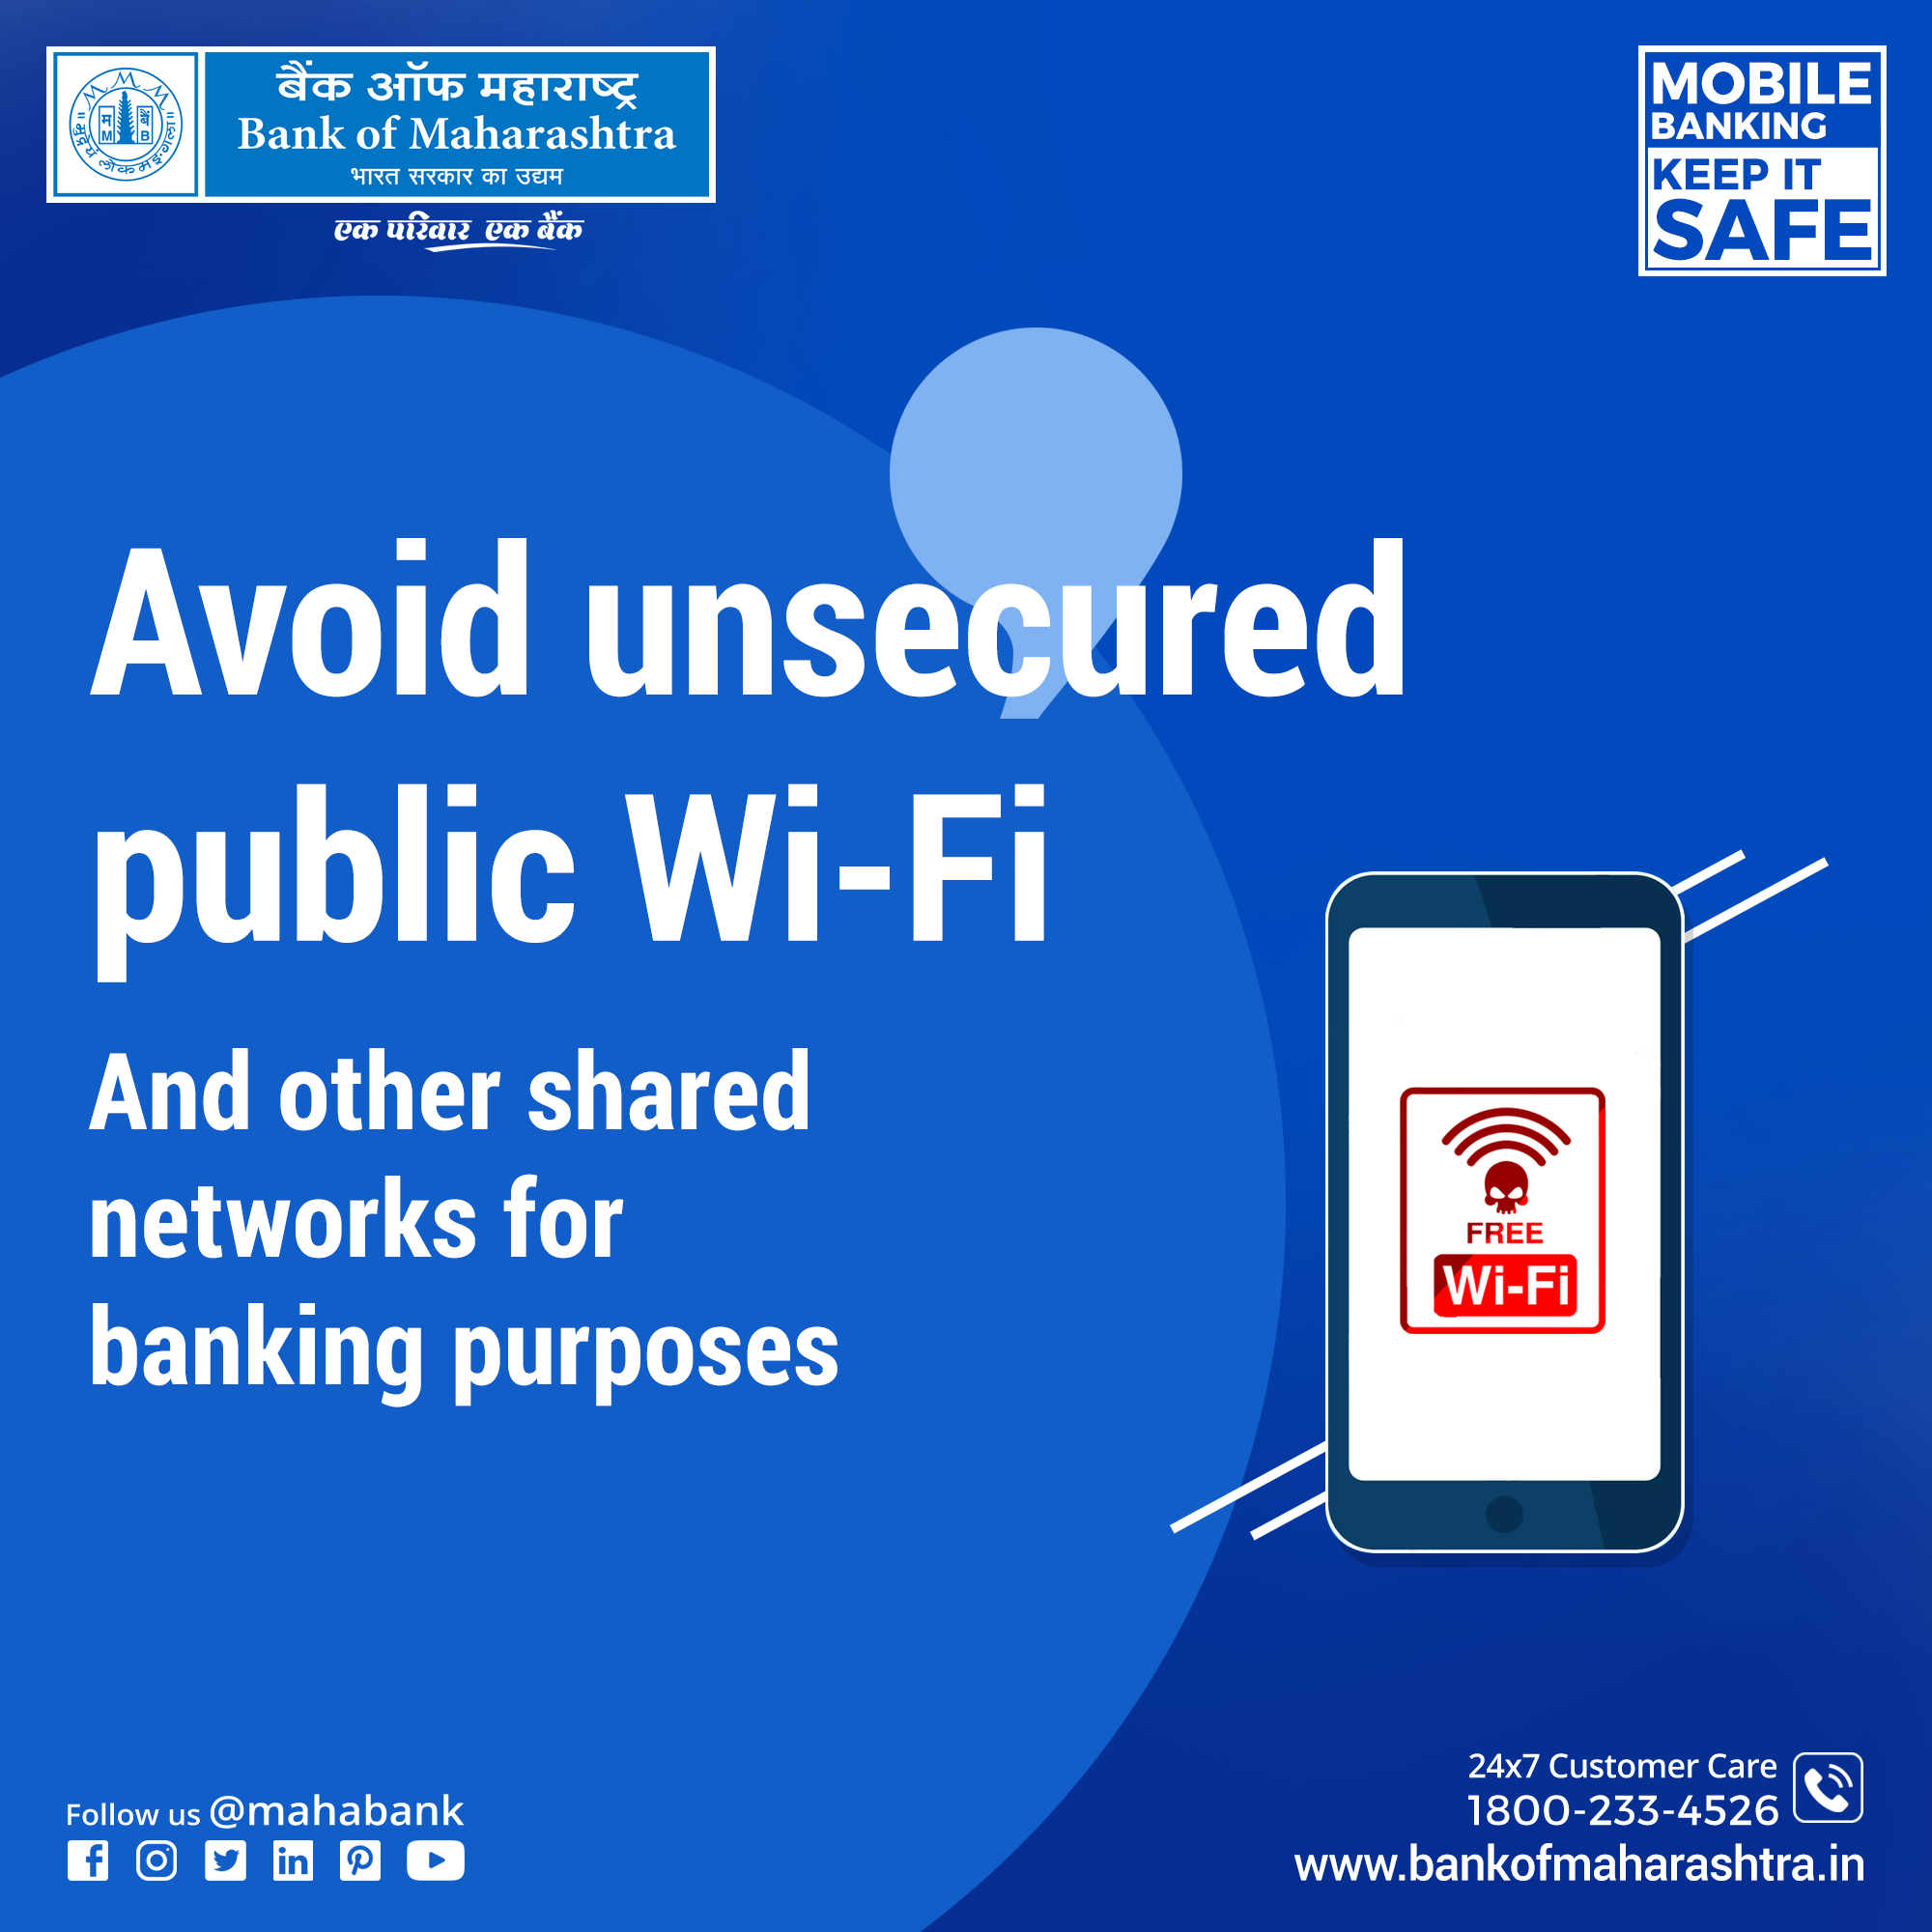 Avoid unsecured public Wi-Fi and other shared networks for banking